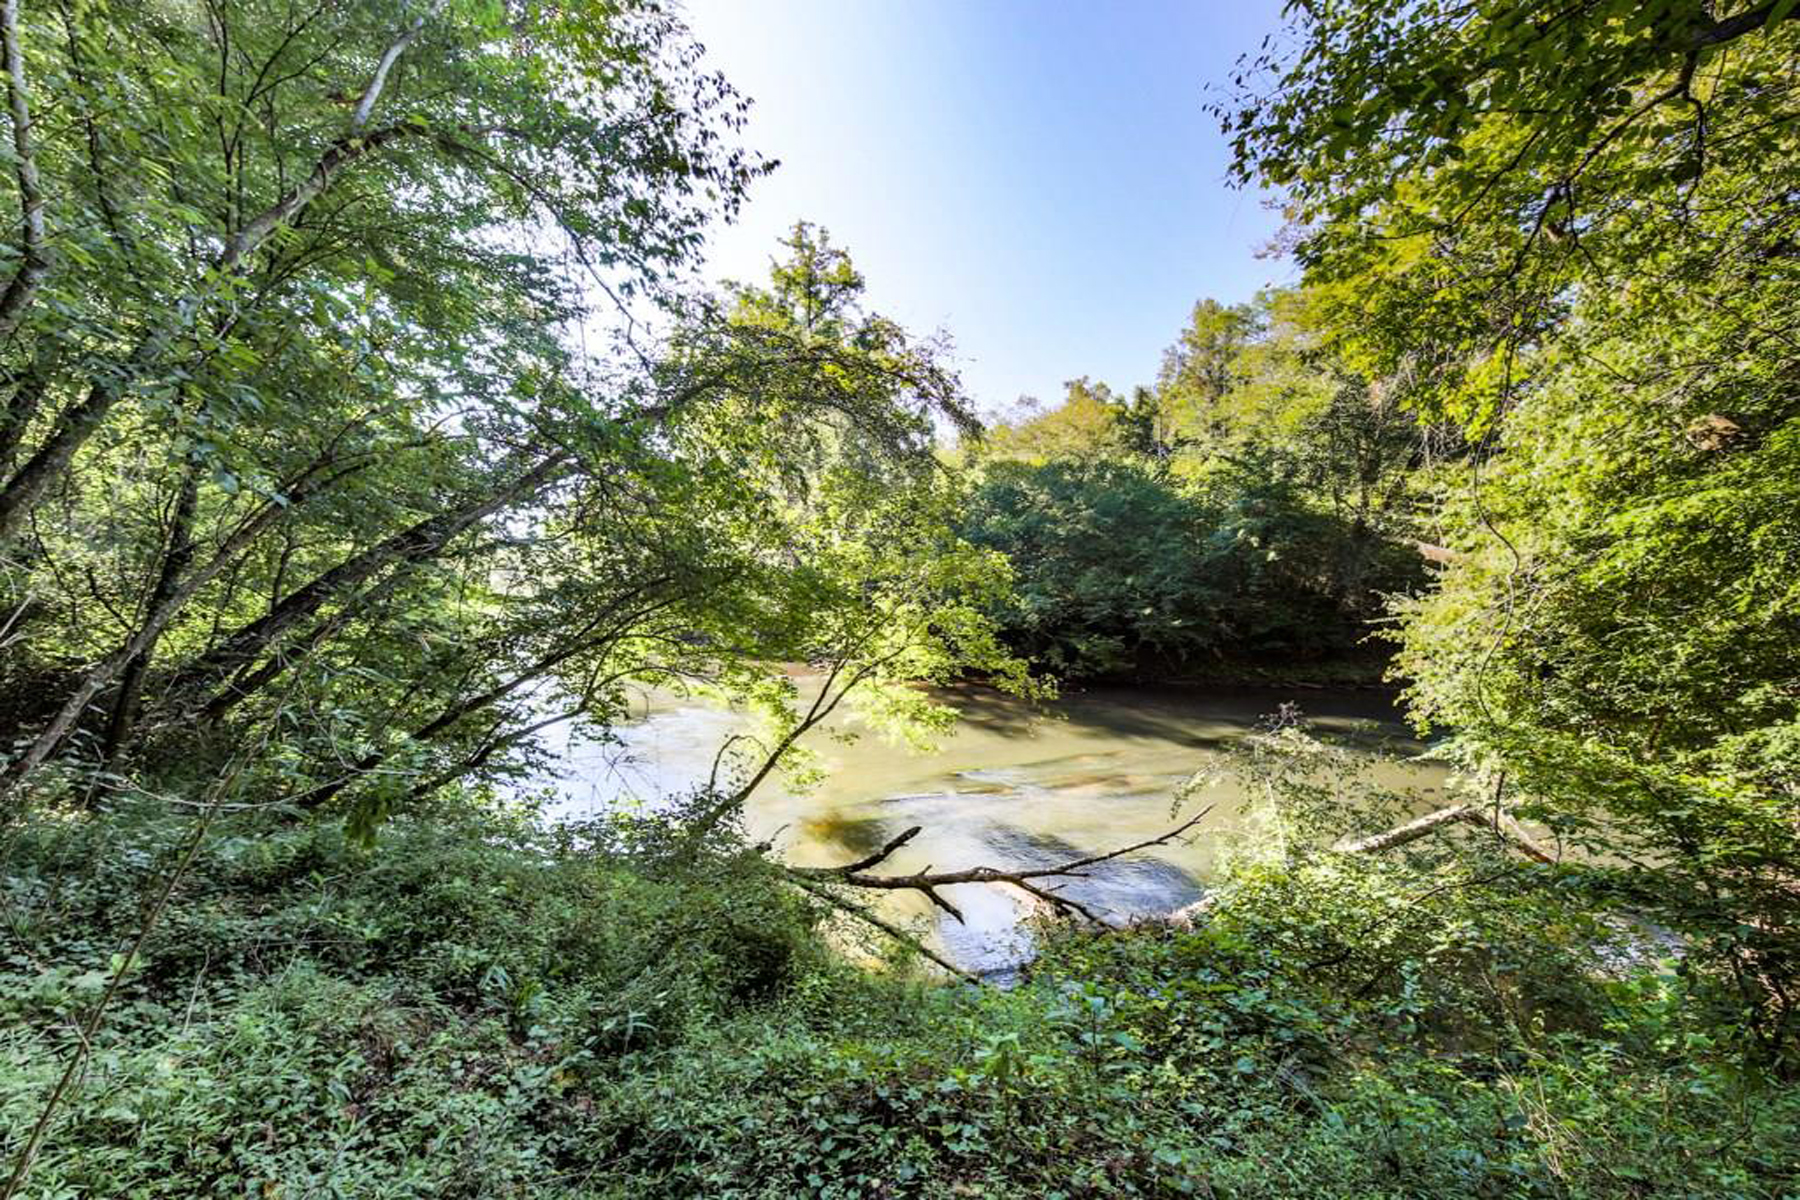 Land for Sale at Gorgeous Etowah River Frontage And 25,000 Acre Dawson Forest Access 0 Etowah Overlook Road Dawsonville, Georgia 30534 United States